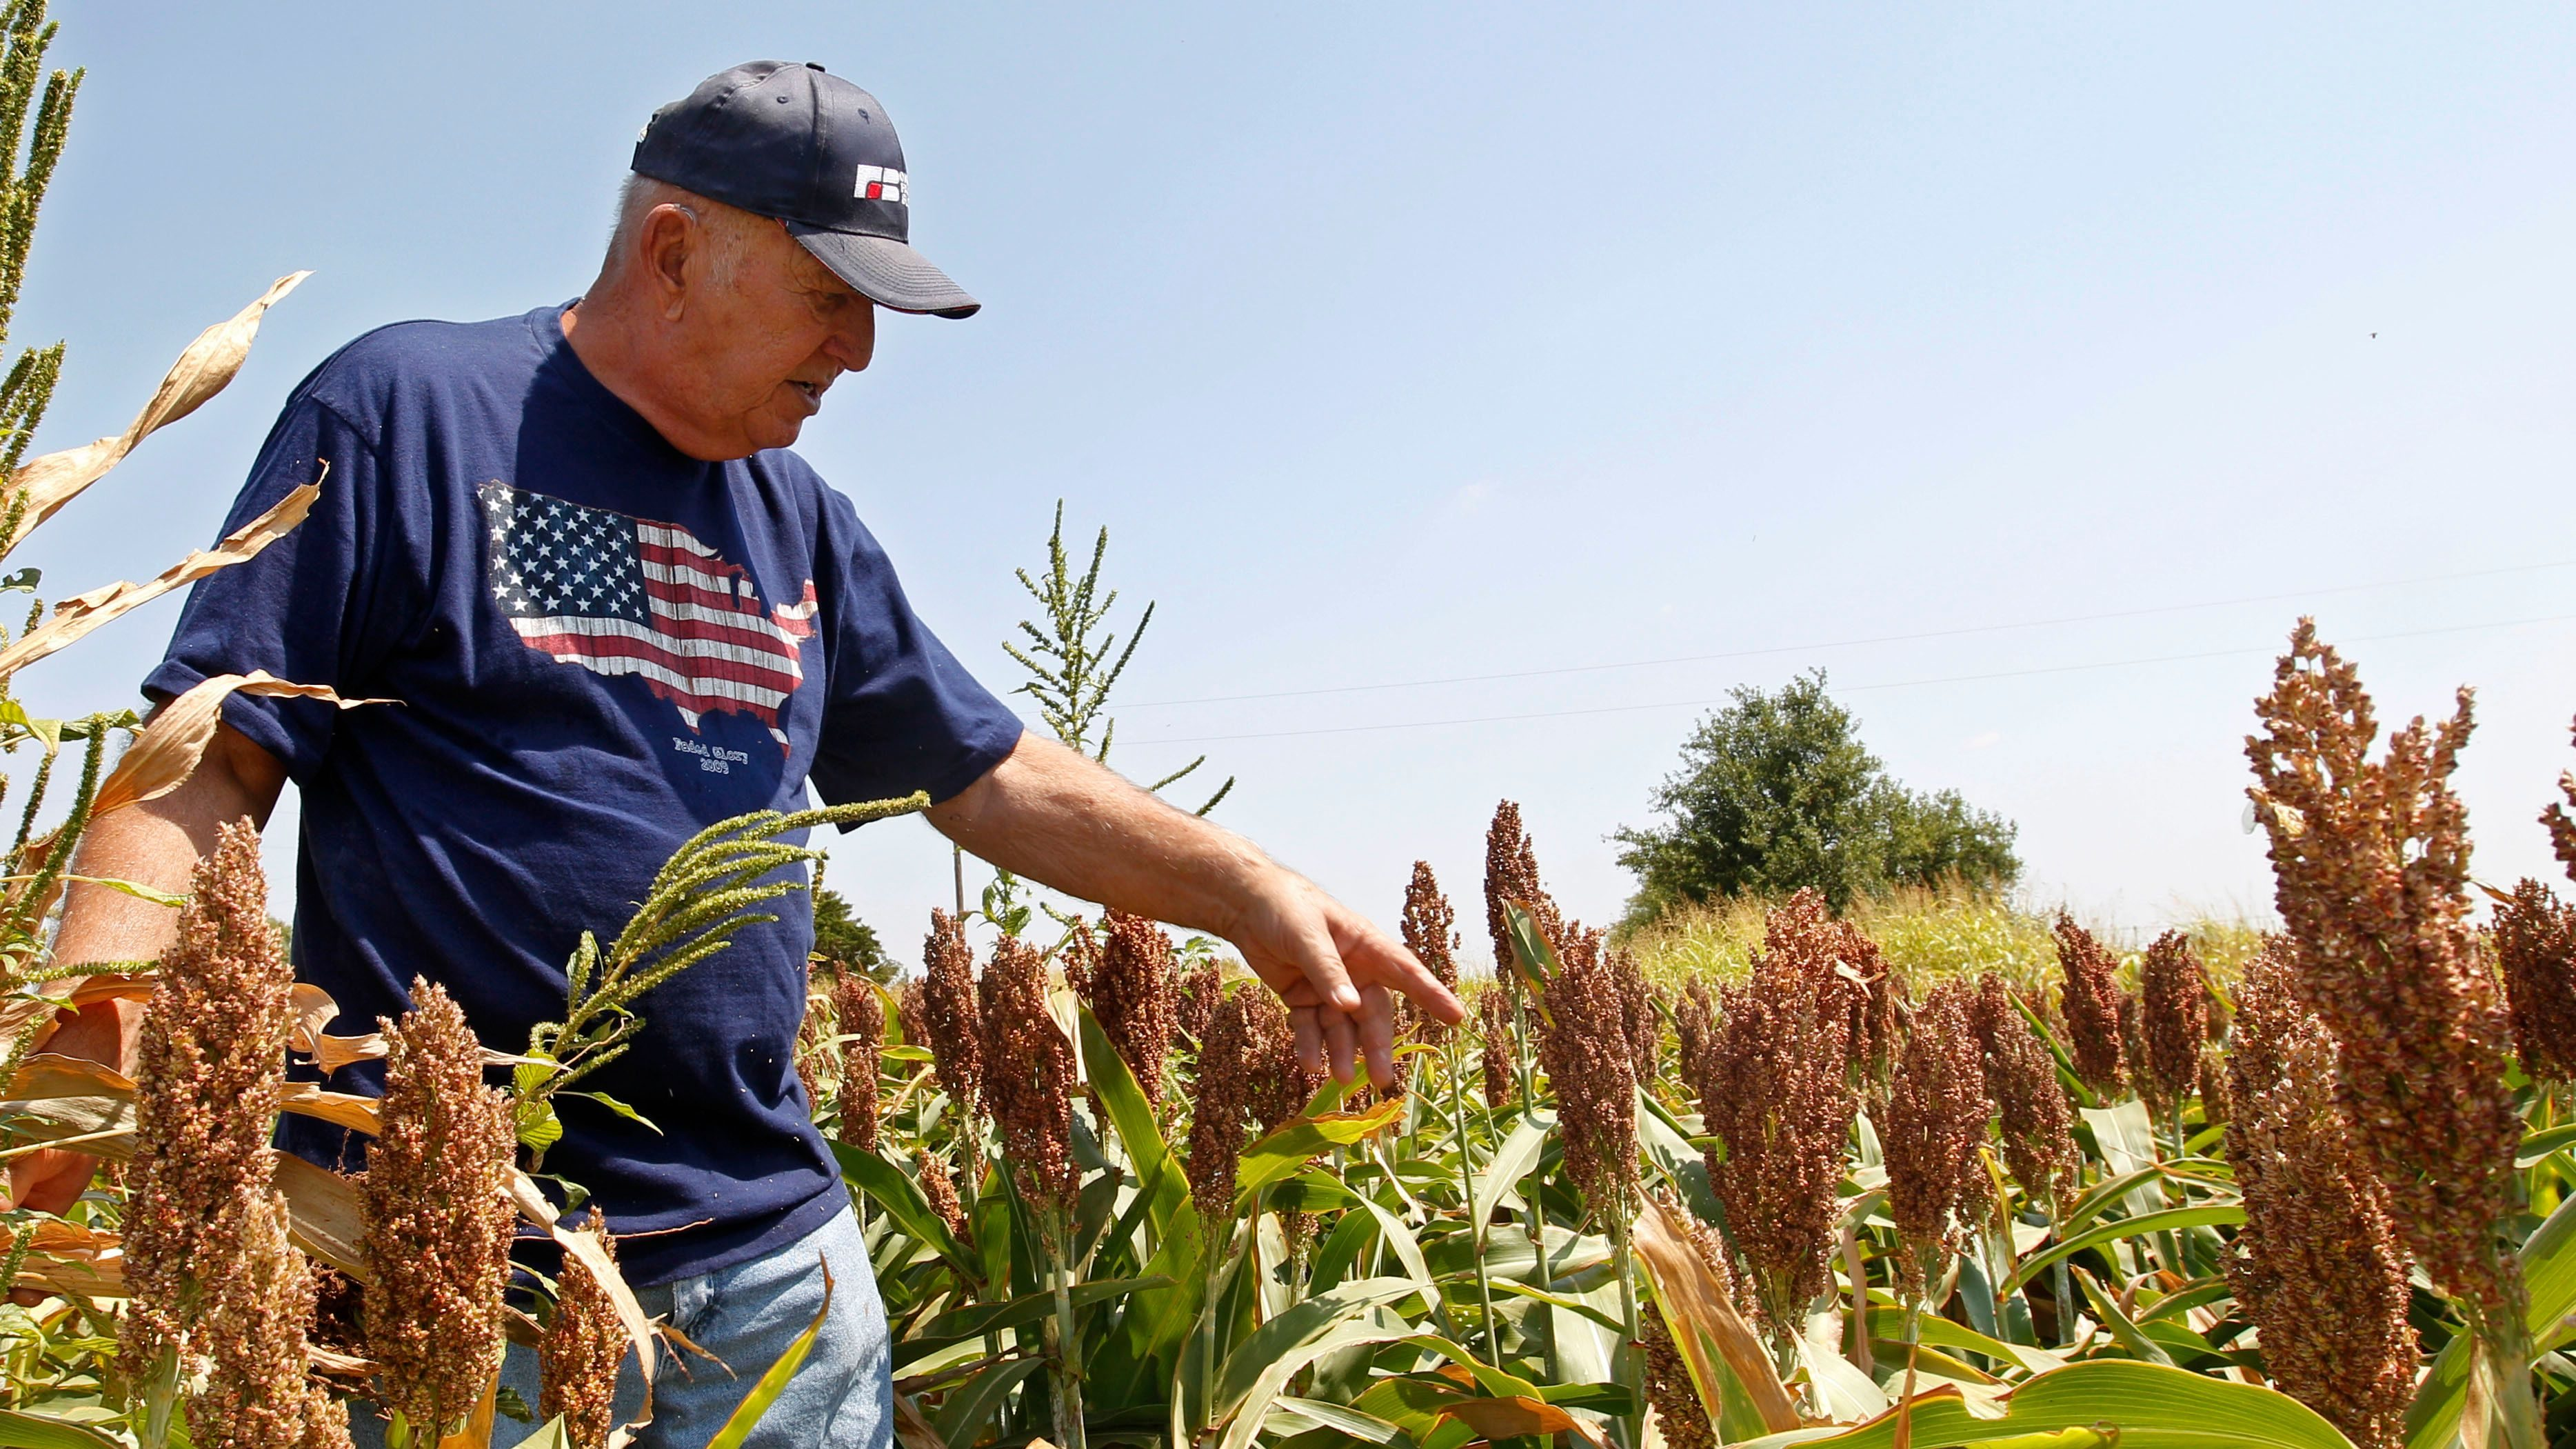 Gary Johnson walks through a field of milo sorghum on his farm in Waukomis, Okla, Wednesday, Aug. 15, 2012. The government is on the verge of approving sorghum, a grain mainly used as livestock feed, to make a cleaner version of ethanol.